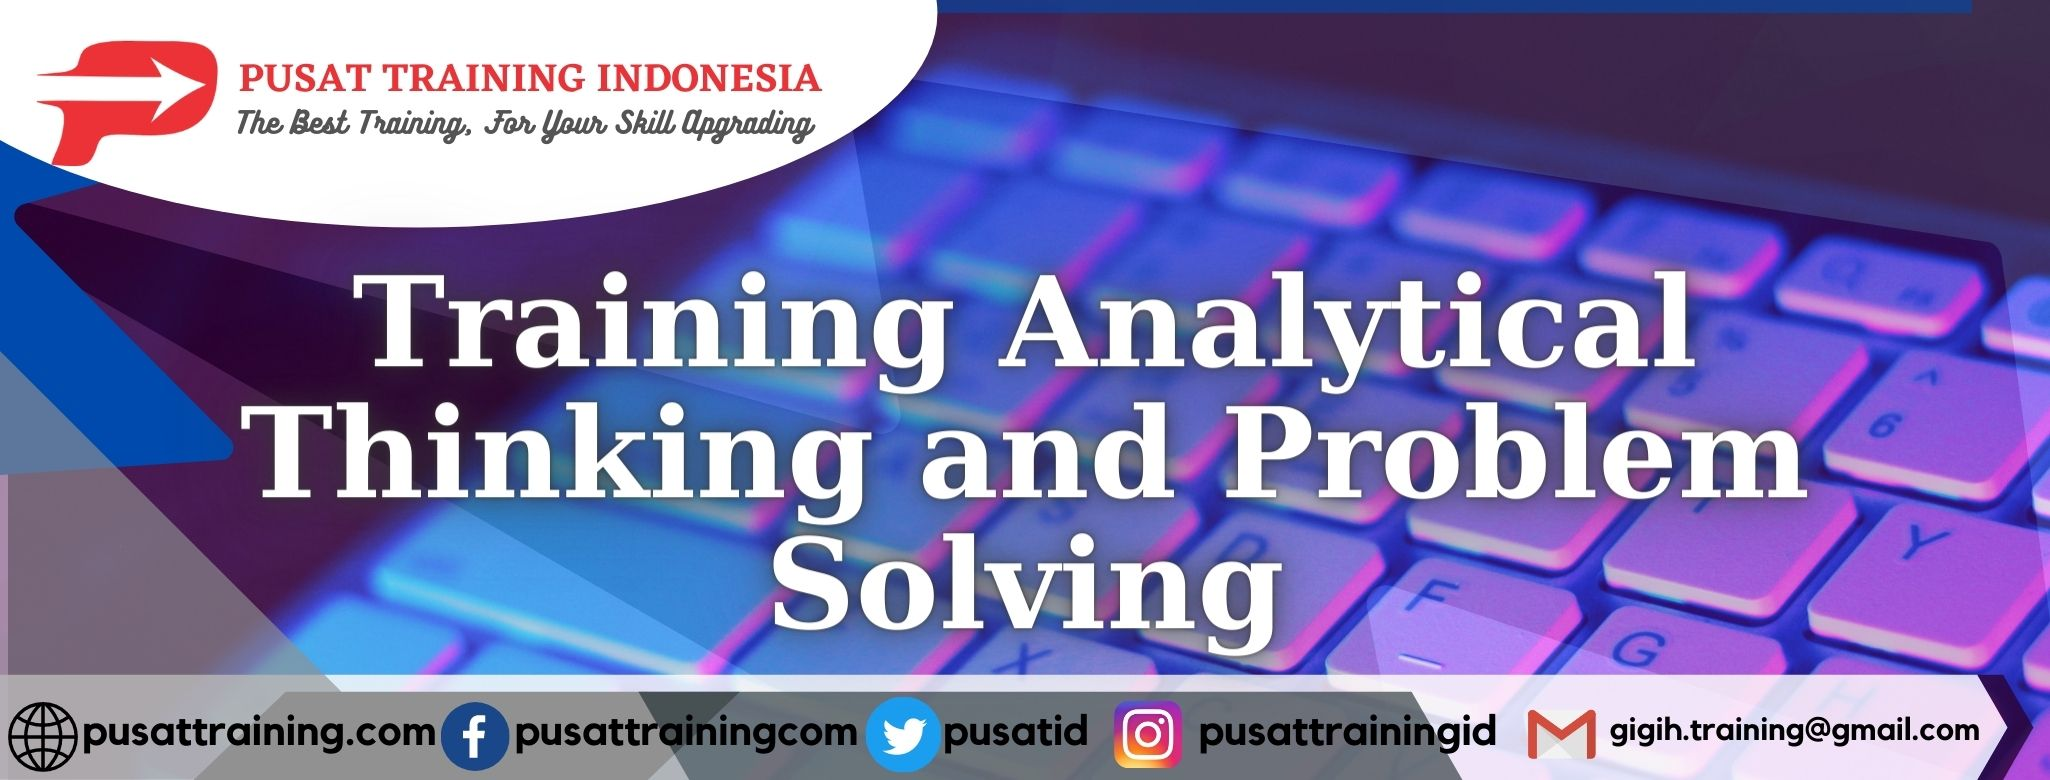 Training-Analytical-Thinking-and-Problem-Solving